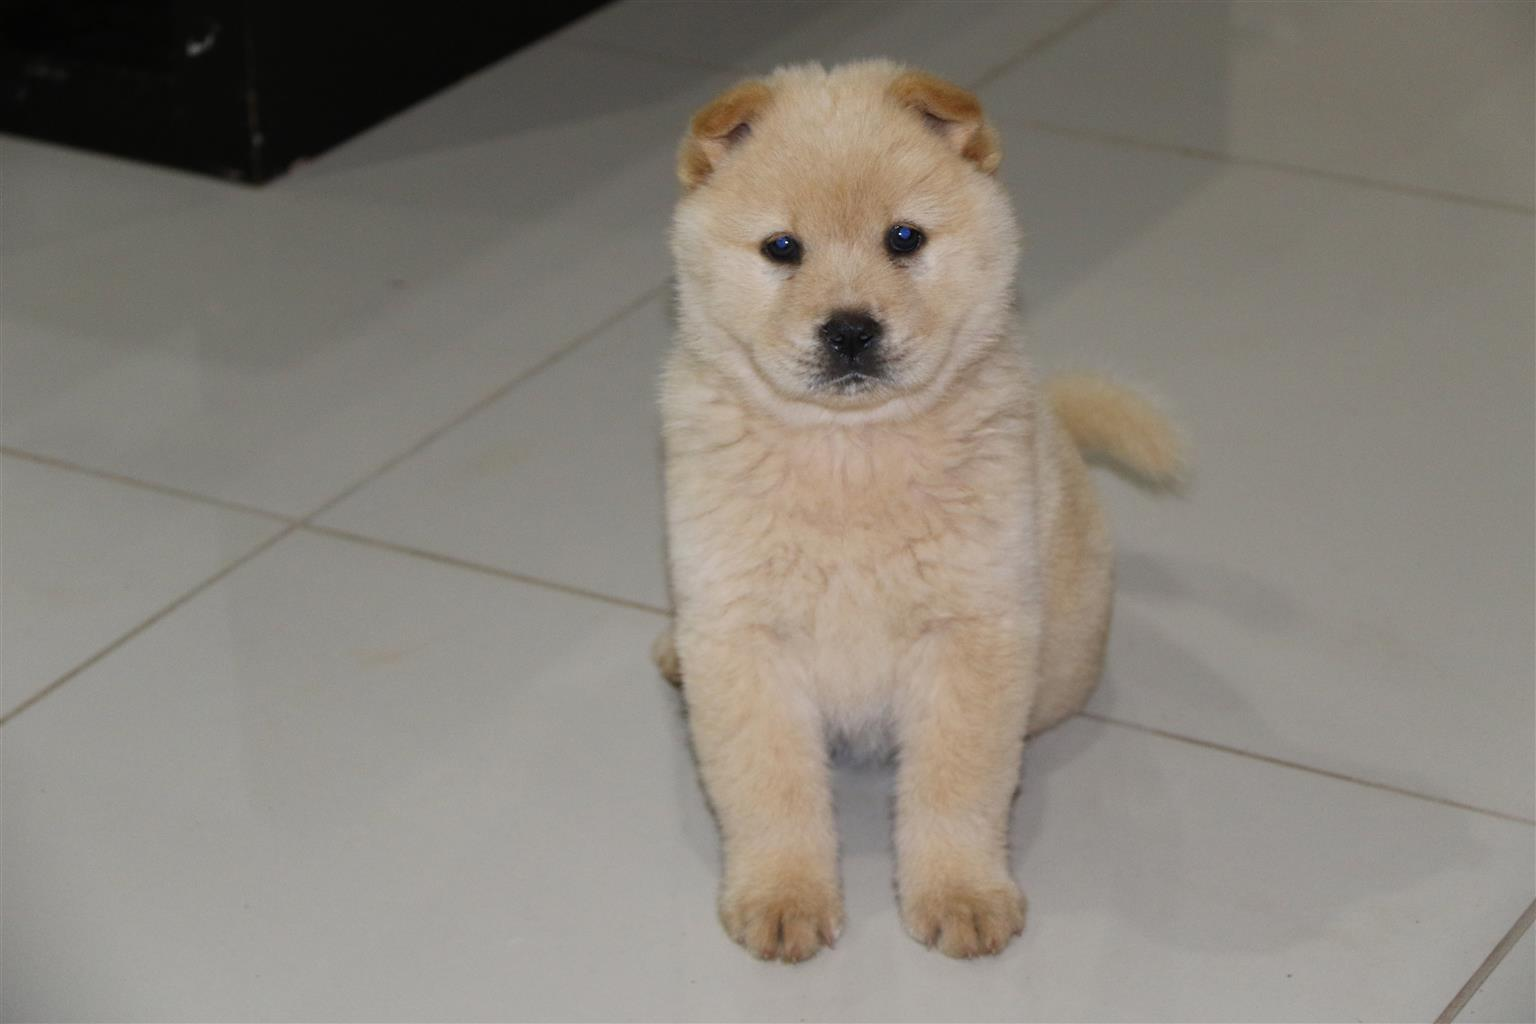 Thoroughbred Chows for sale vaccinated/dewormed 8 weeks old - 1 male and 1 female R2000.00 each